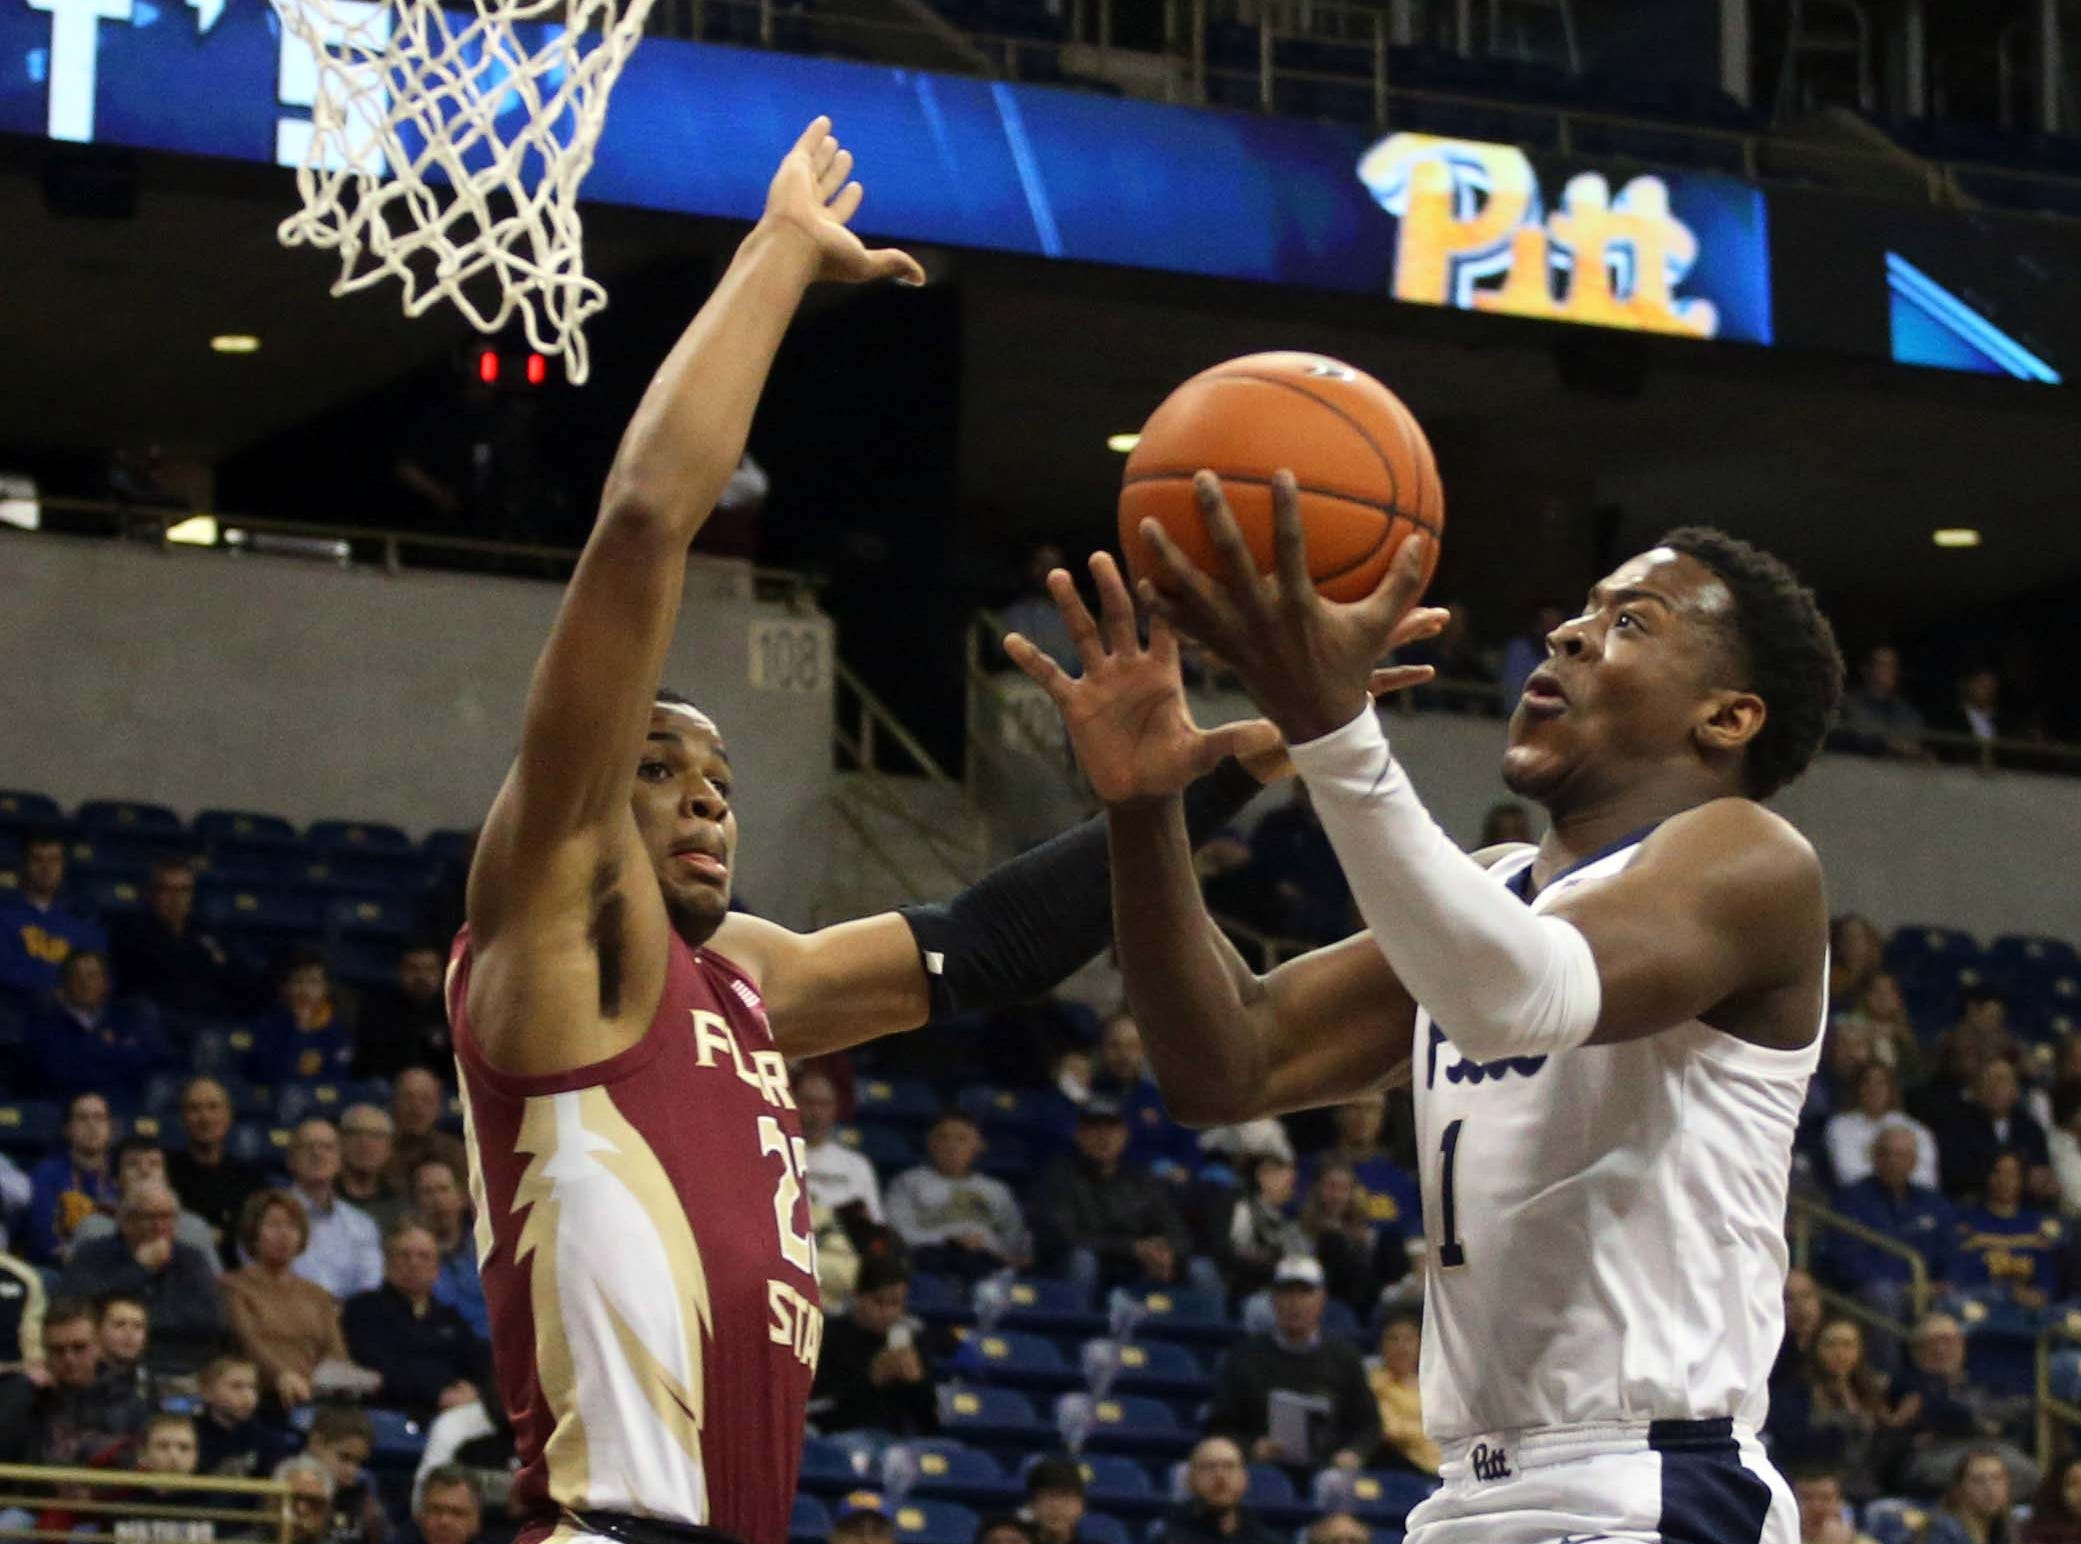 Jan 14, 2019; Pittsburgh, PA, USA; Pittsburgh Panthers guard Xavier Johnson (1) shoots against Florida State Seminoles guard M.J. Walker (23) during the first half at the Petersen Events Center. Mandatory Credit: Charles LeClaire-USA TODAY Sports